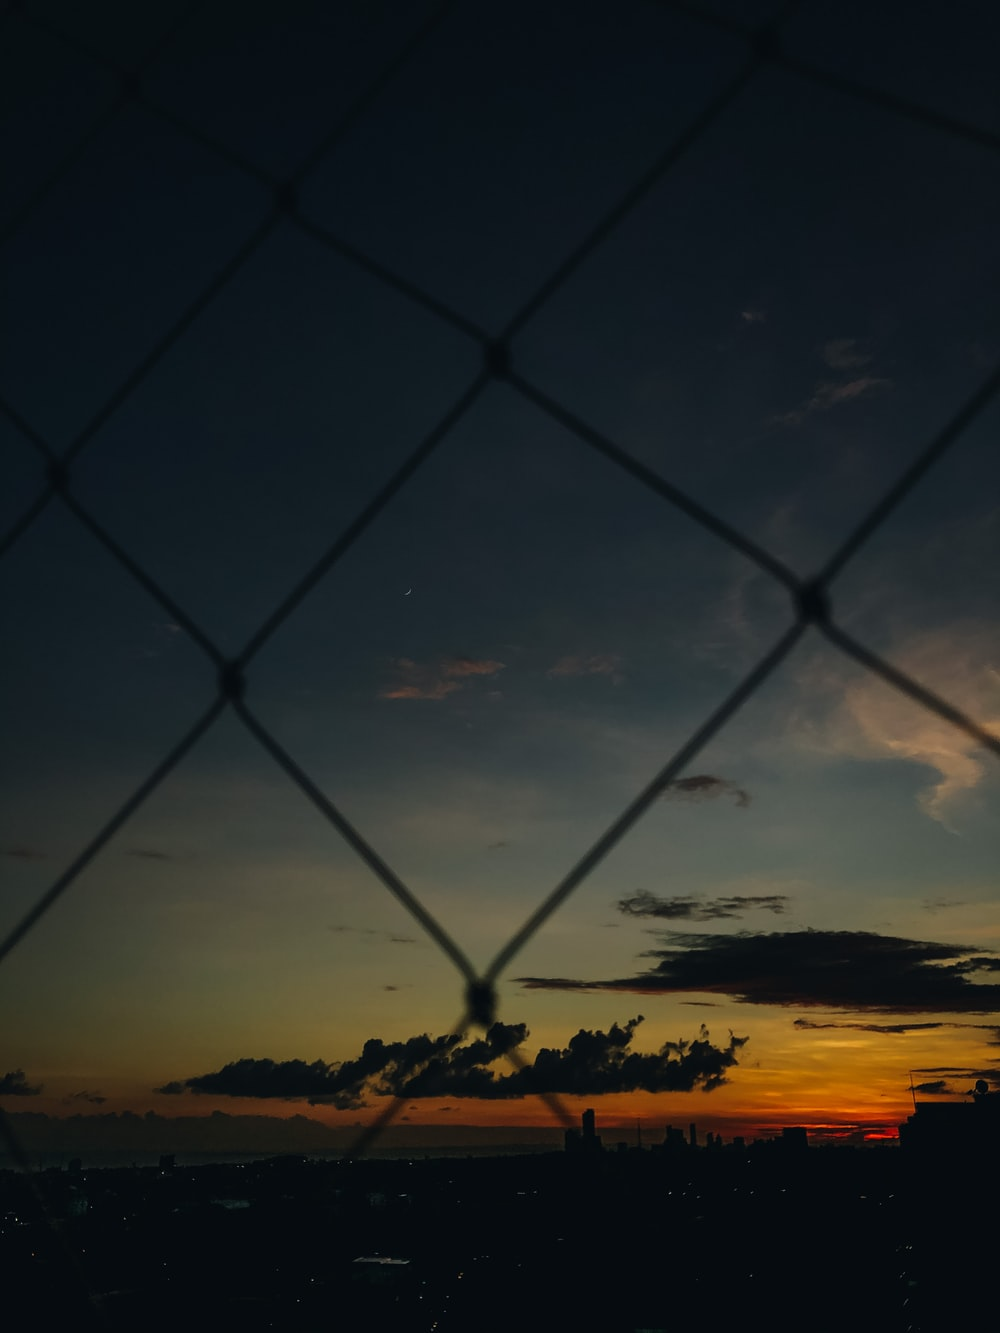 silhouette of chain link fence during sunset